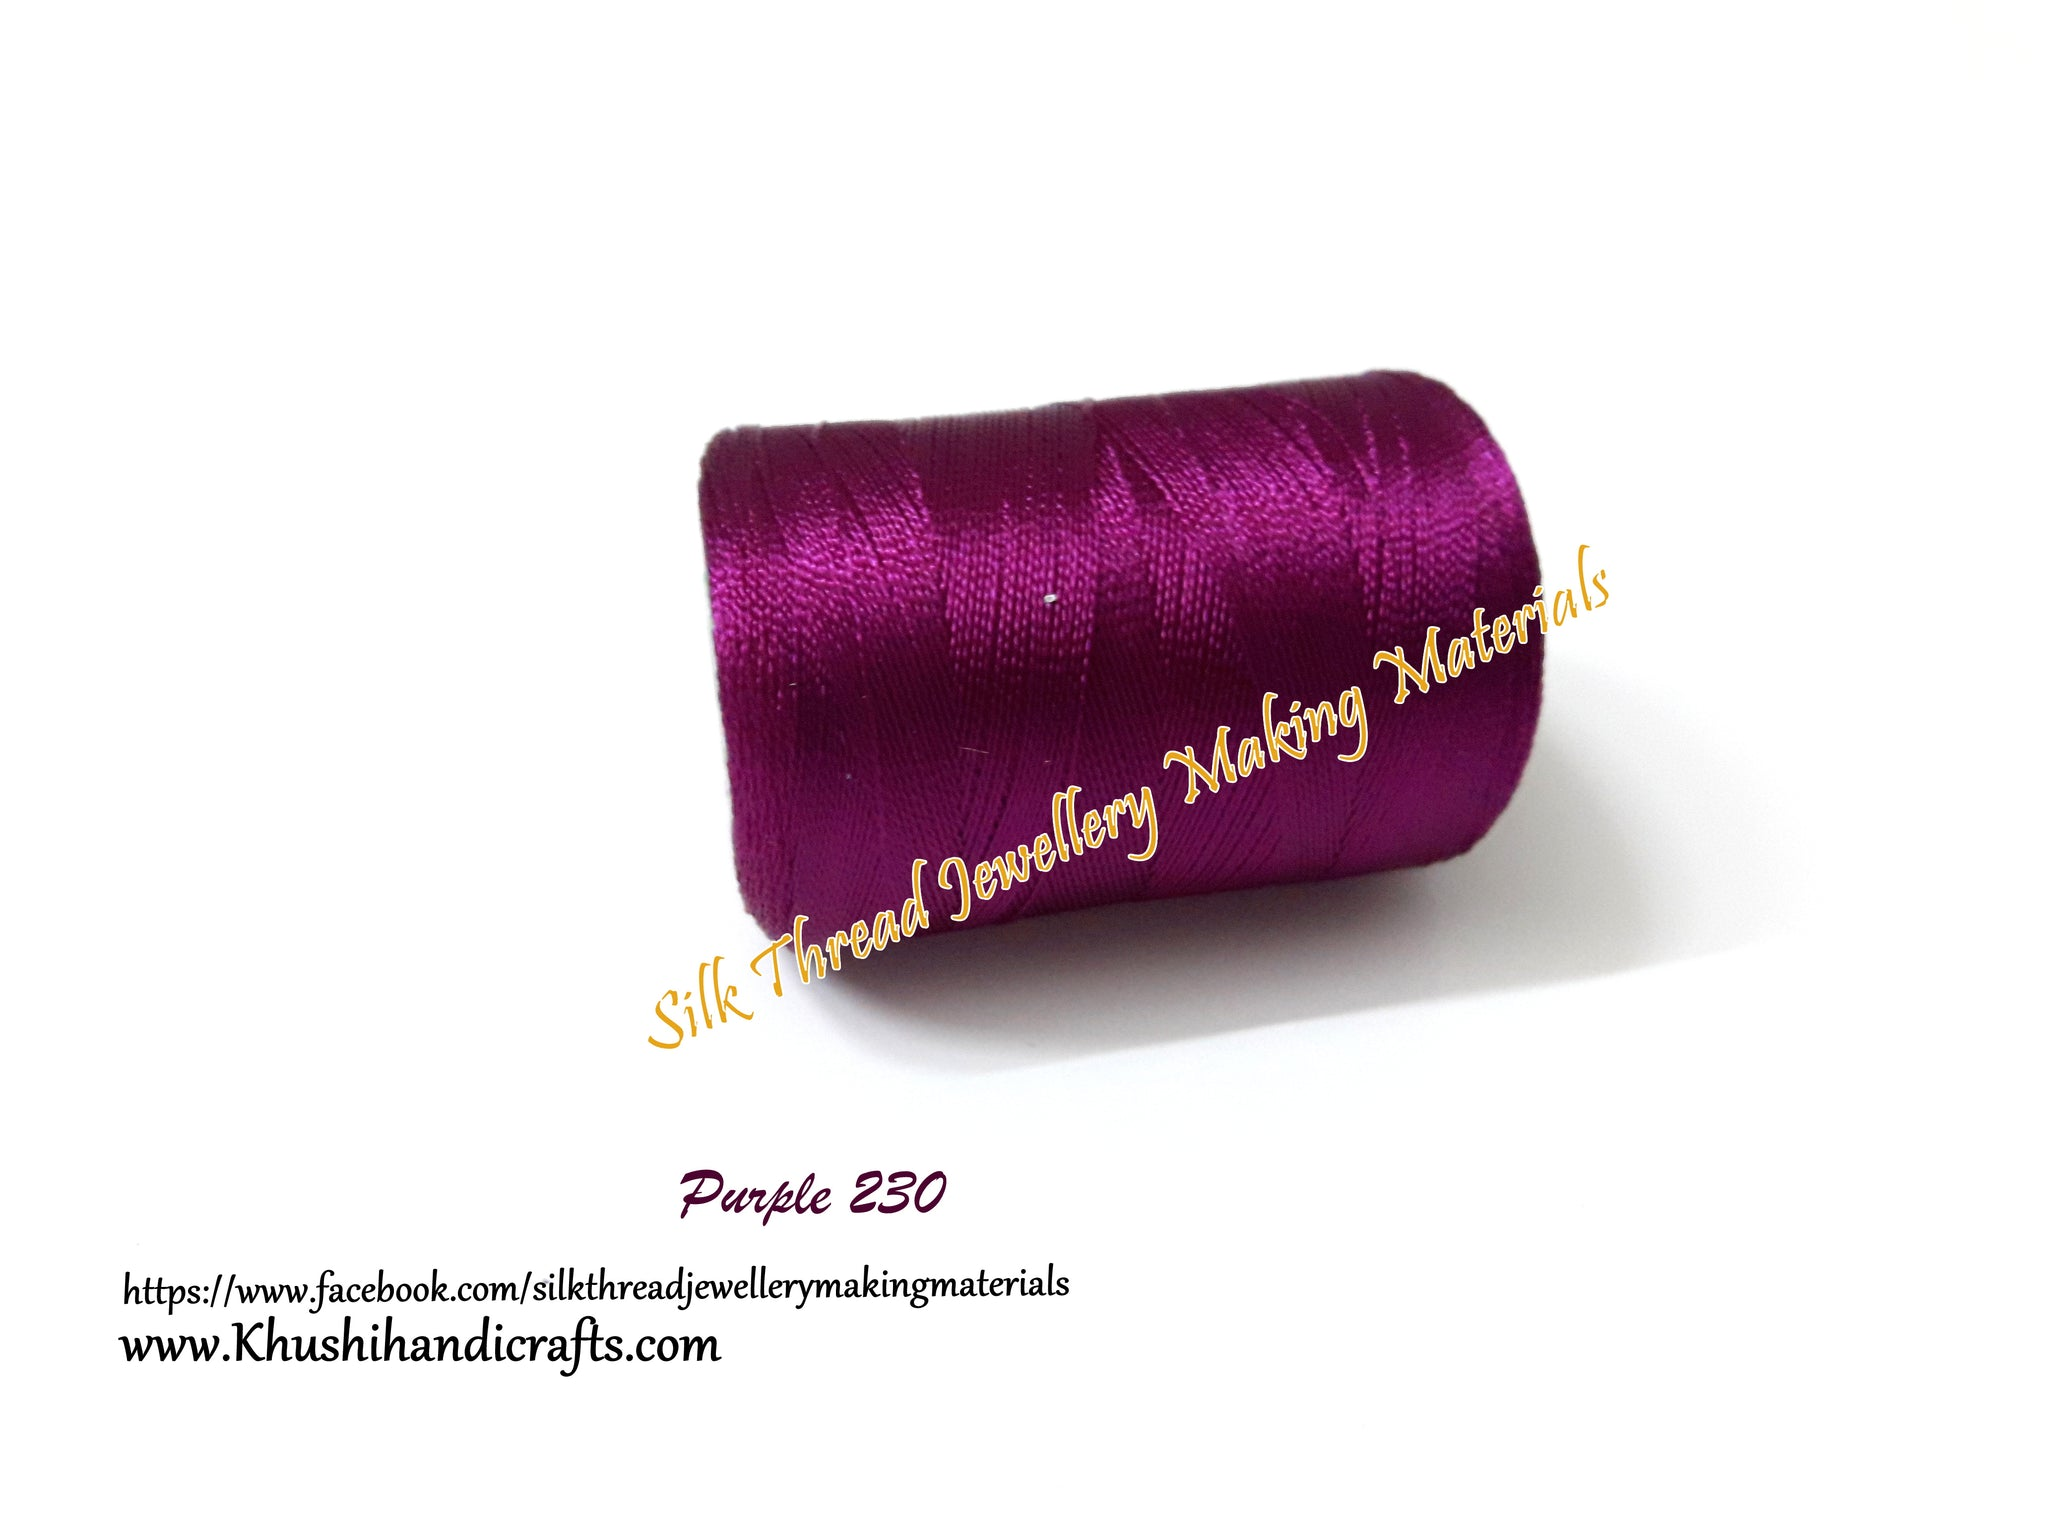 Purple Double Bell Silk spool